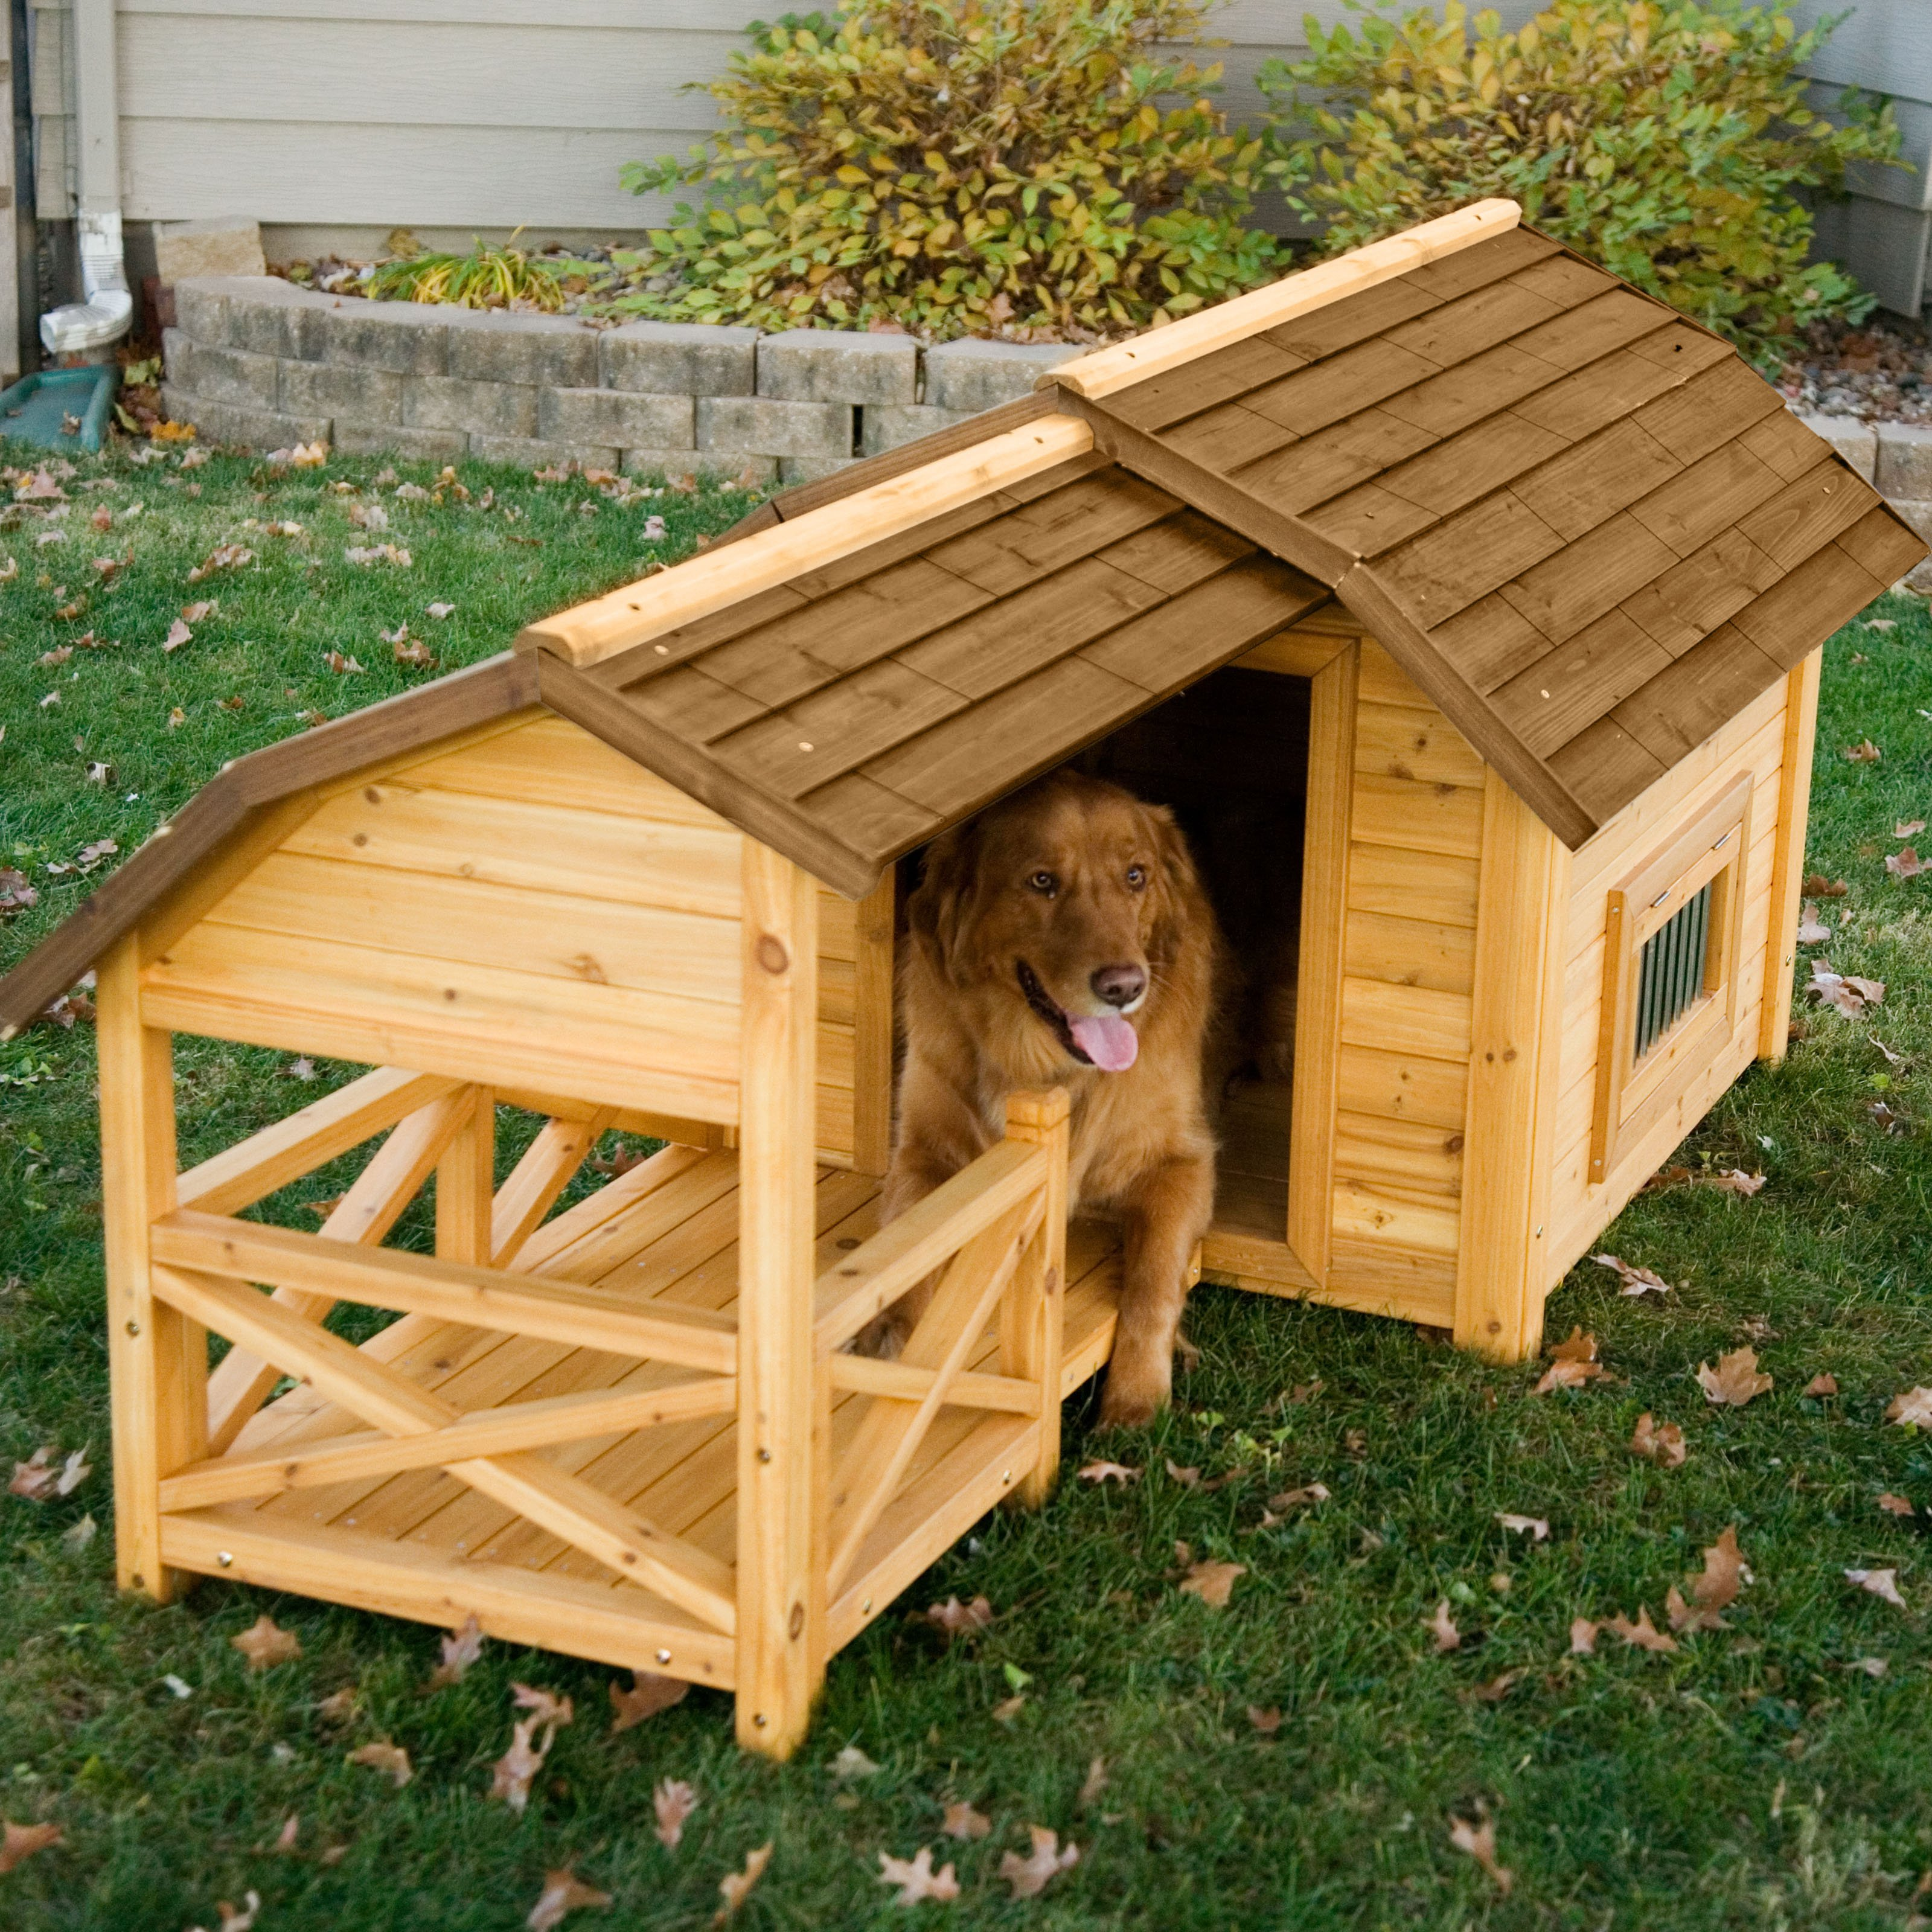 Boomer & George Wooden Barn Dog House Walmart